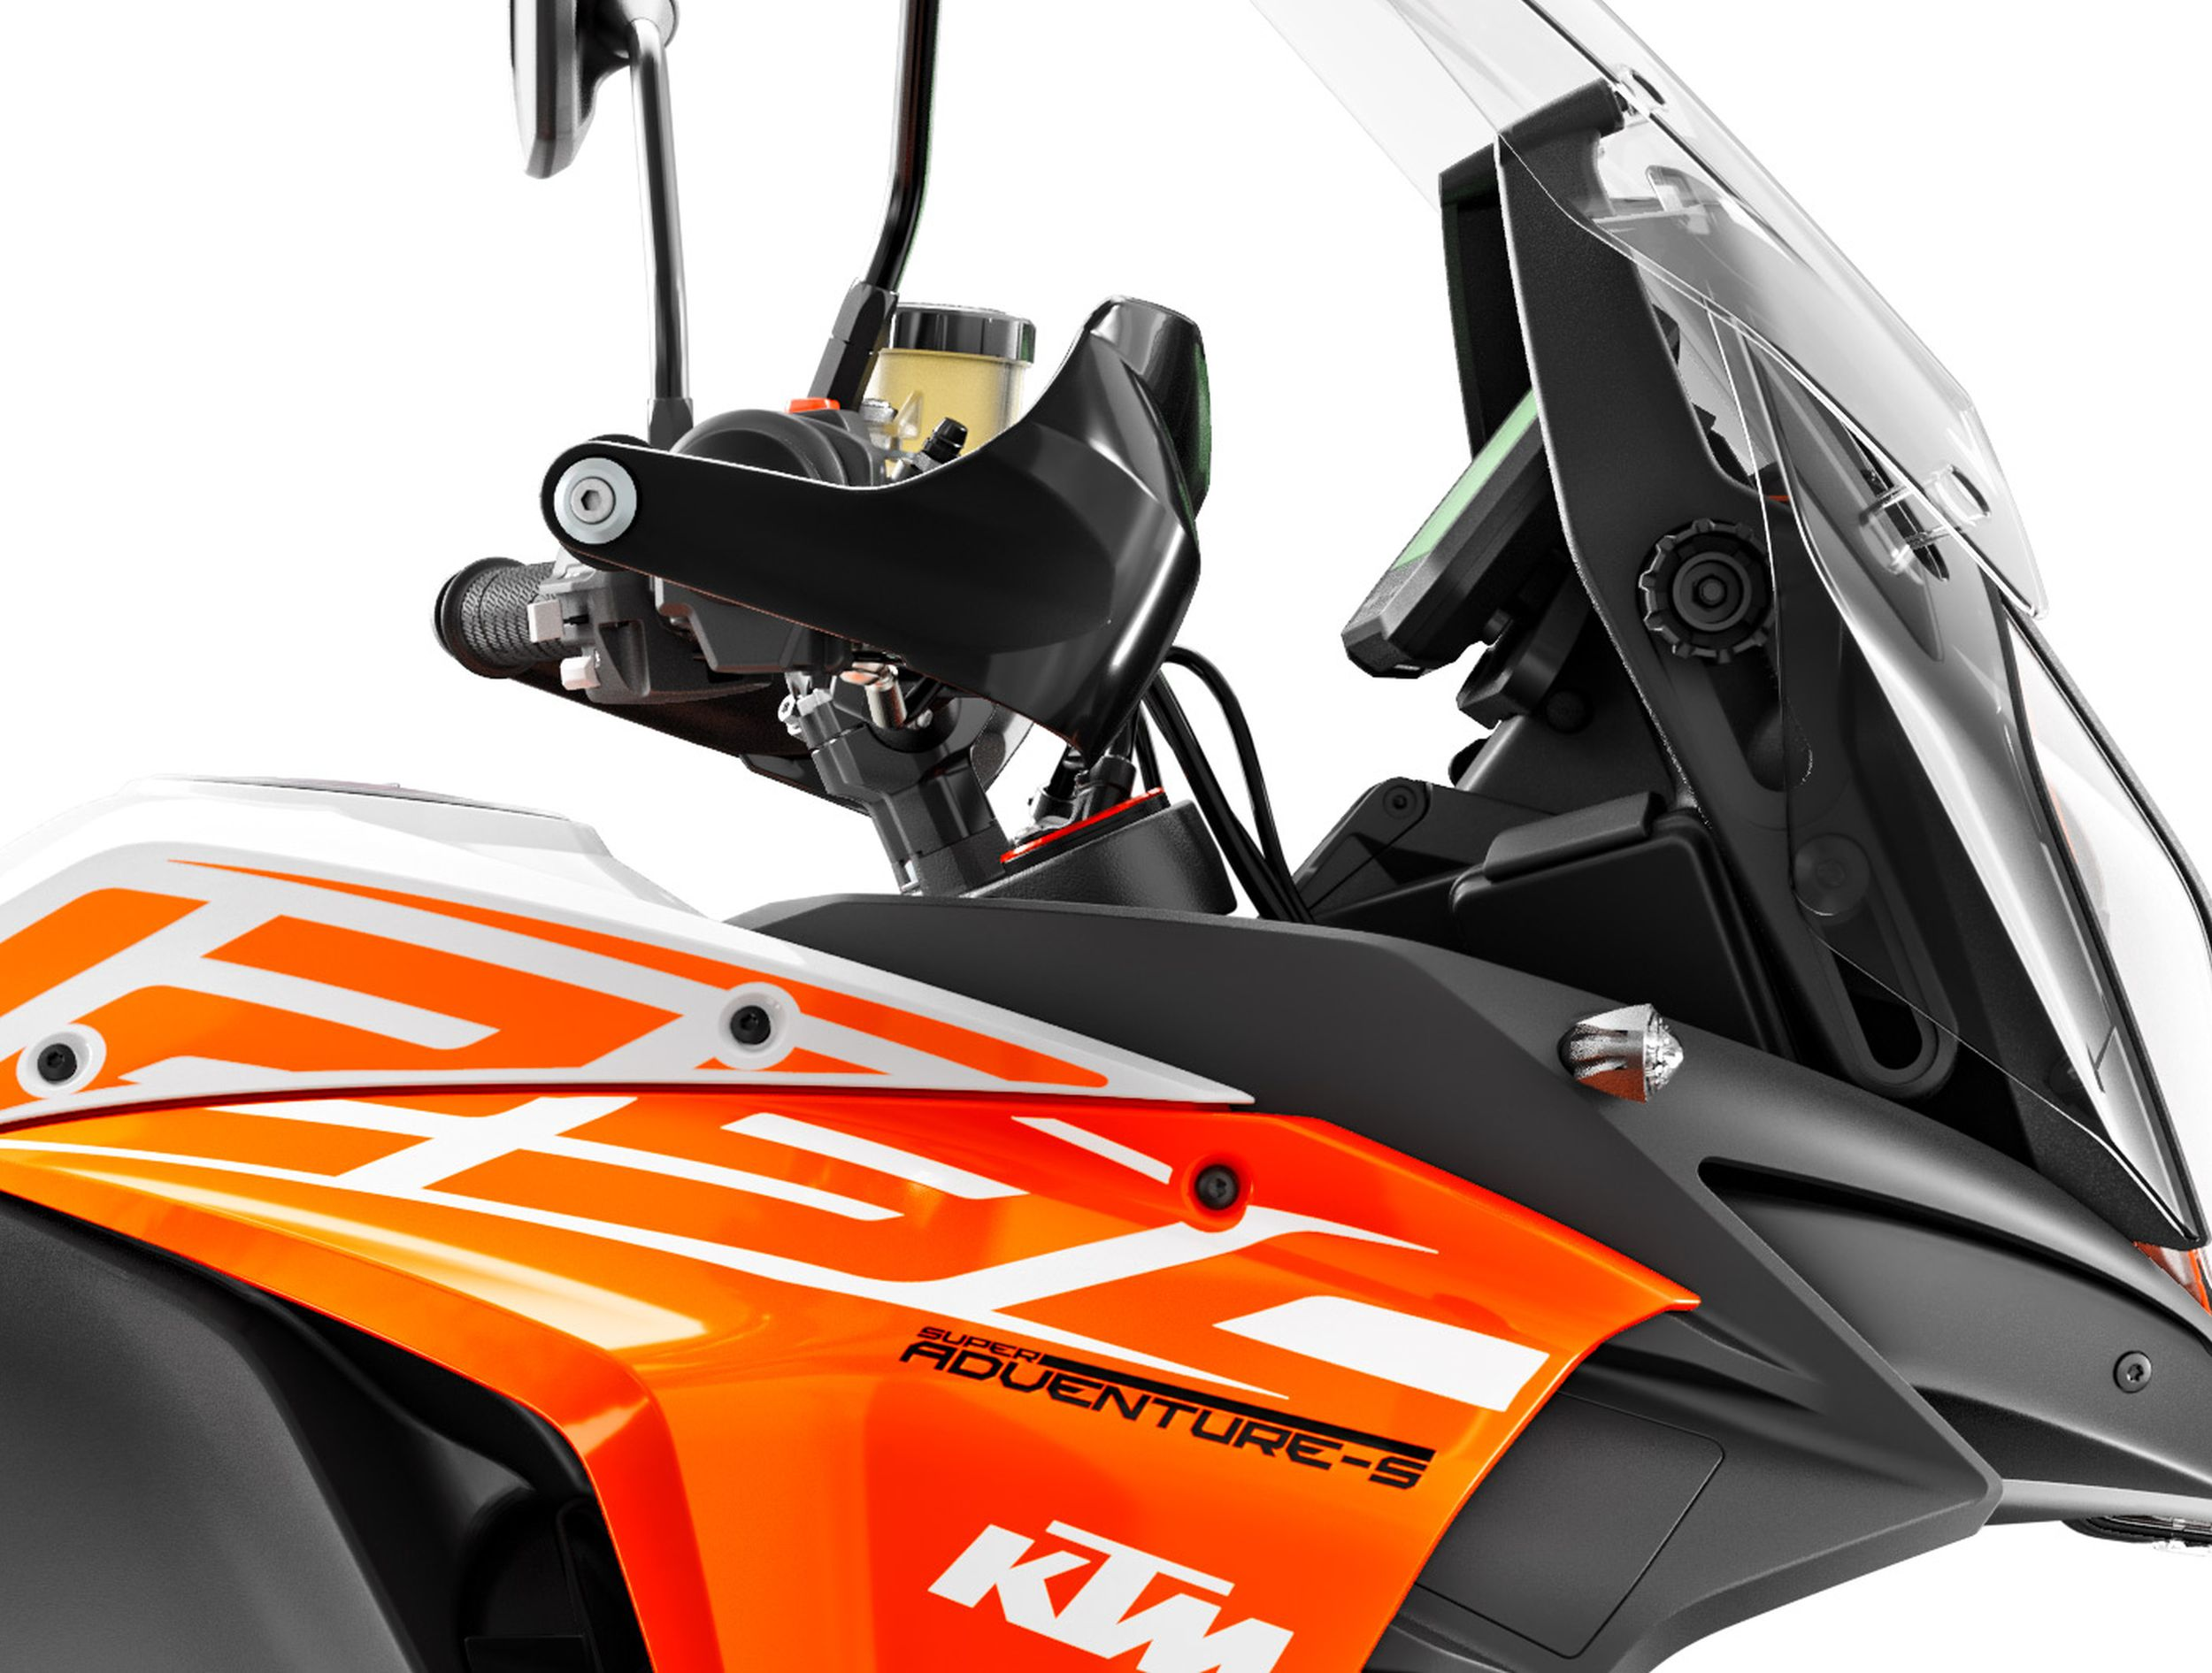 gebrauchte ktm 1290 super adventure s motorr der kaufen. Black Bedroom Furniture Sets. Home Design Ideas